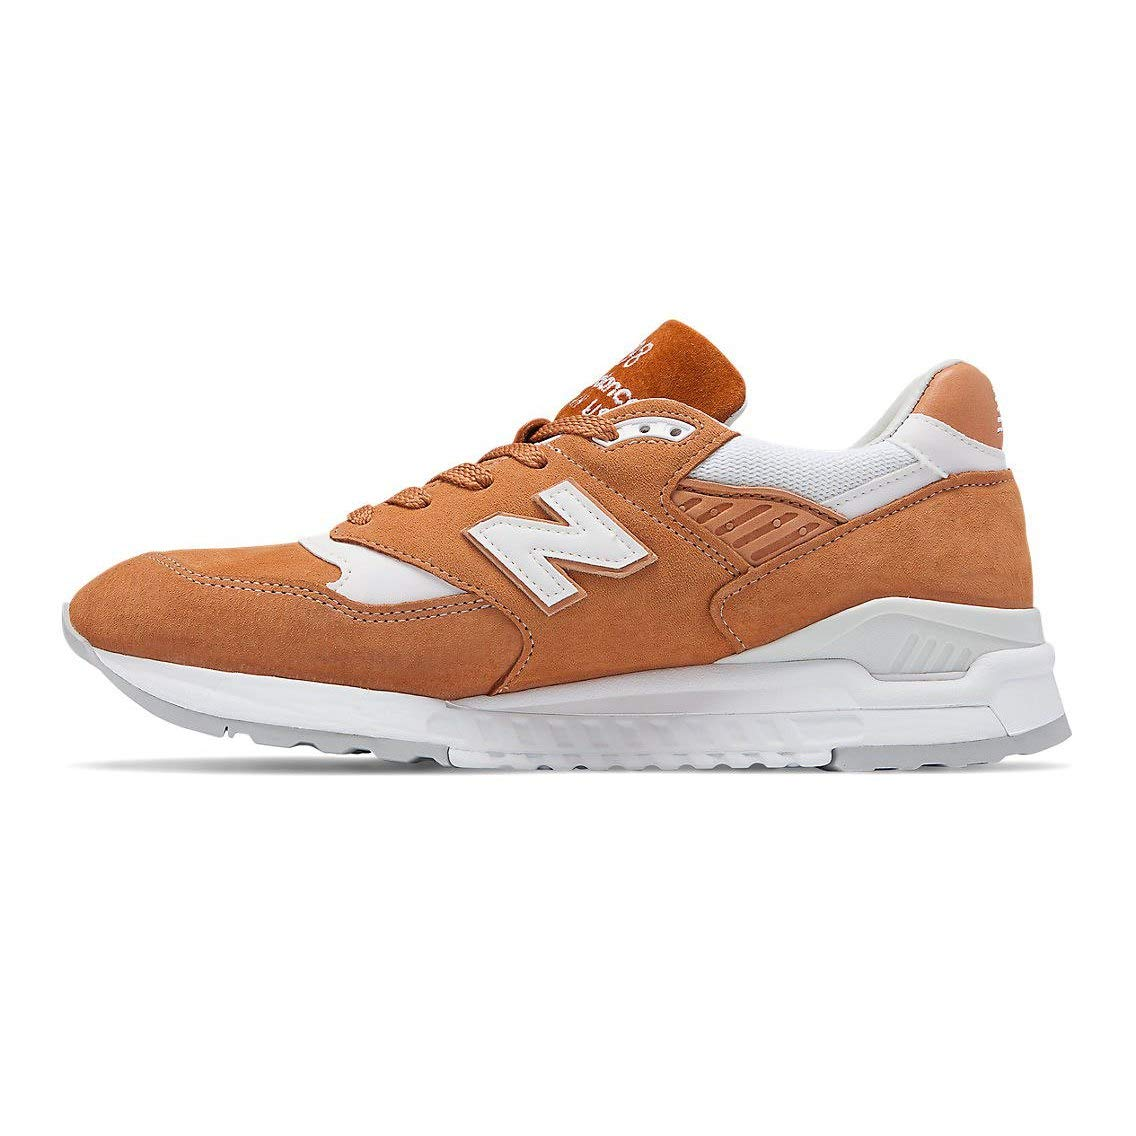 NewBalance M999 D Leather Synthetic Synthetic Synthetic - jta rot, Größe 11.5(45.5) 1beeb0